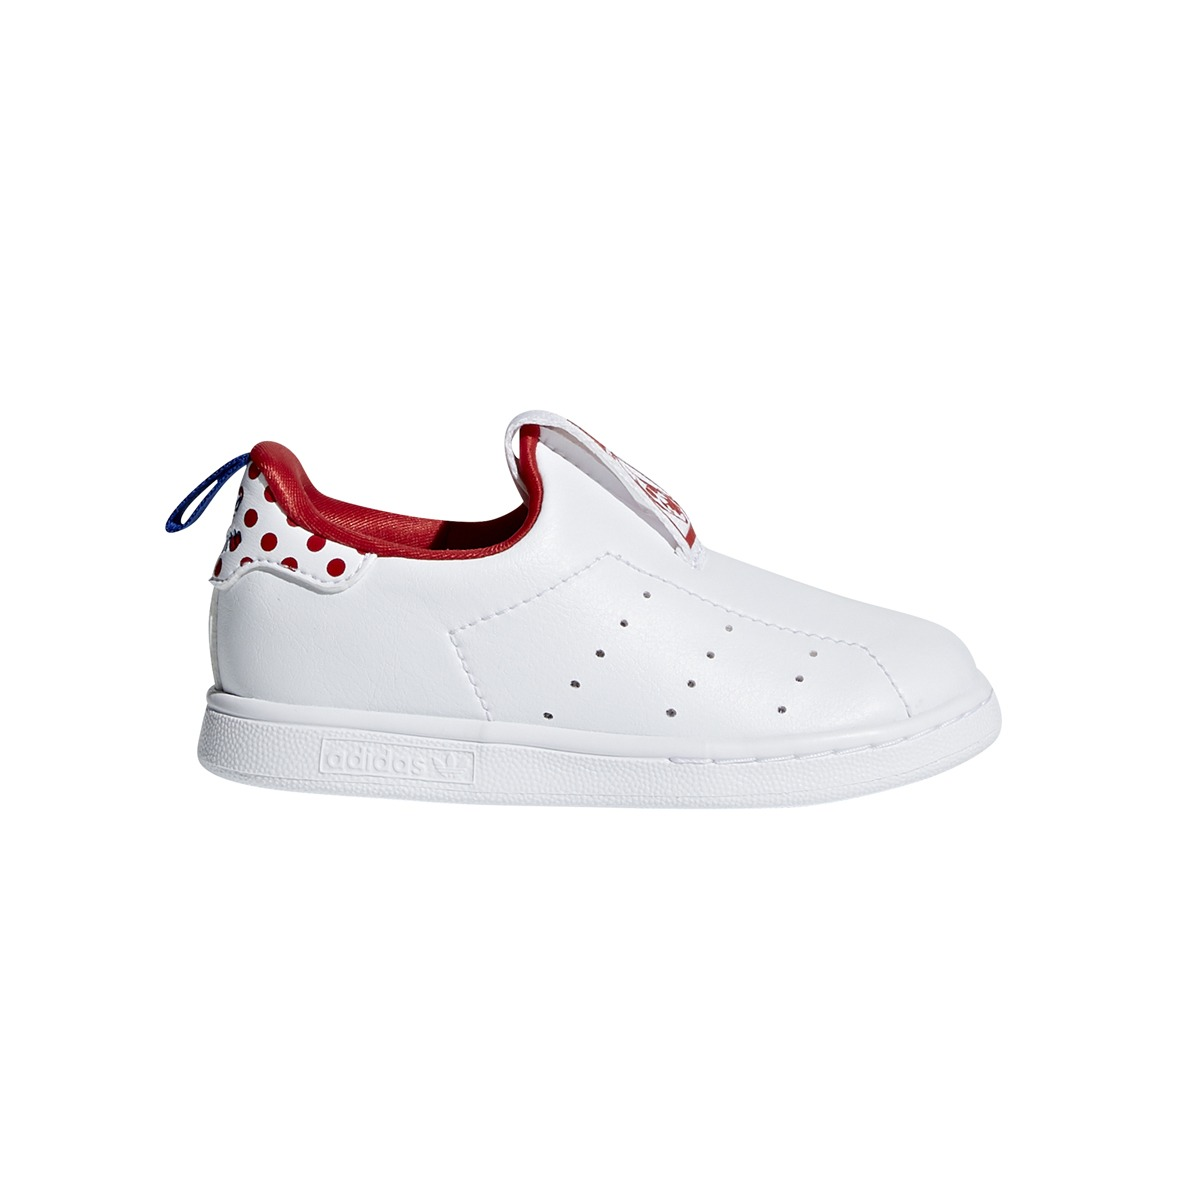 8003158e8 zapatillas adidas originals moda stan smith 360 i bebe bl rj. Cargando zoom.